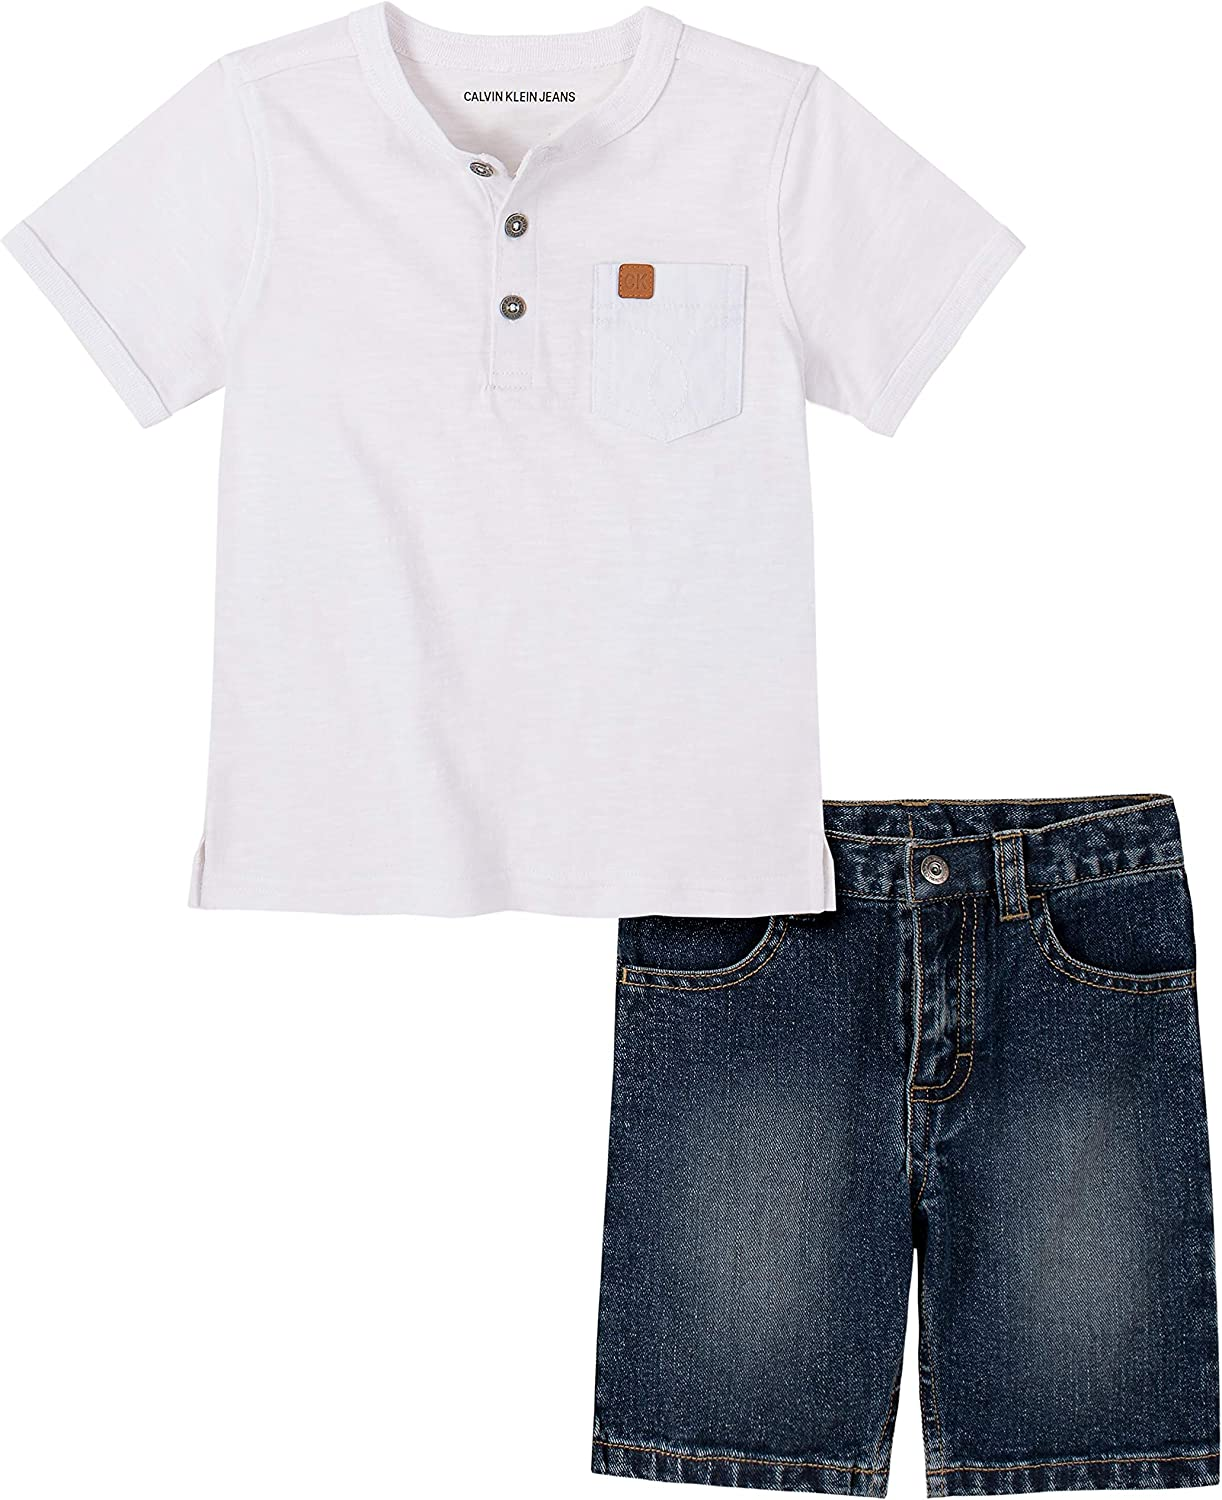 Calvin Klein Boys' 2 Pieces Shorts Set